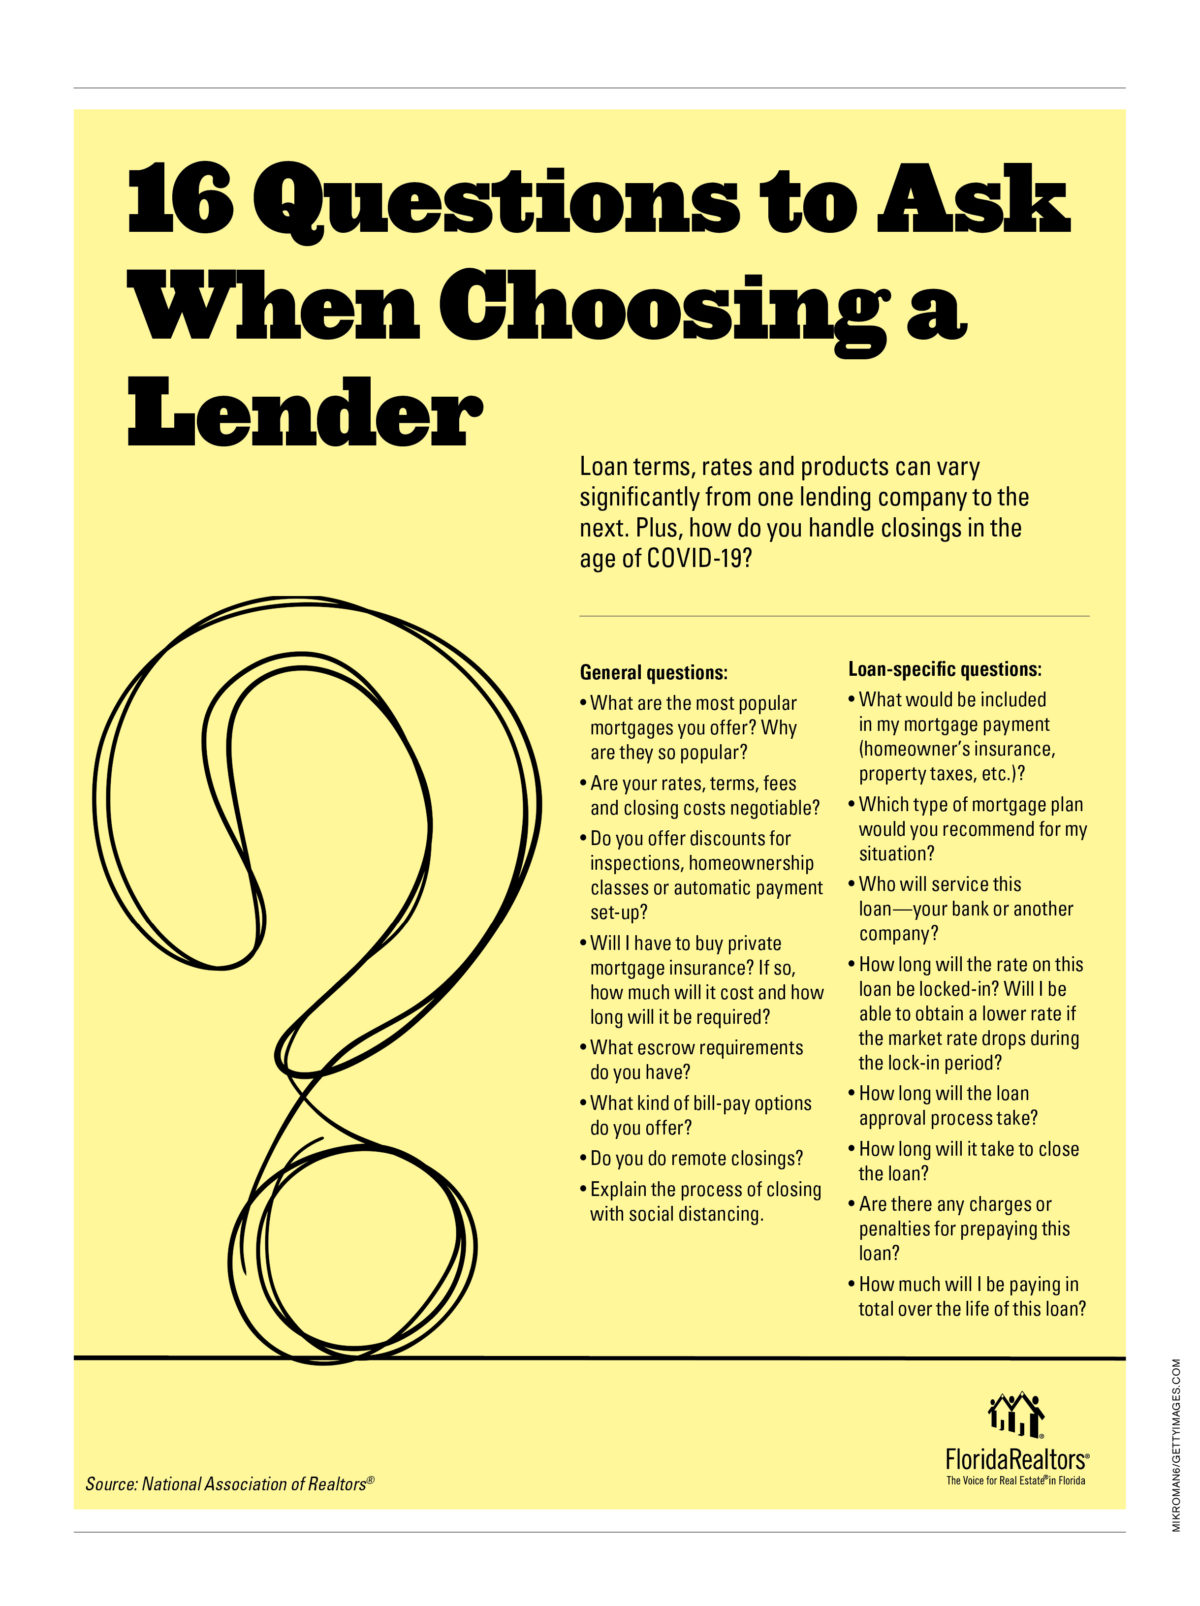 16 Questions to Ask When Choosing a Lender